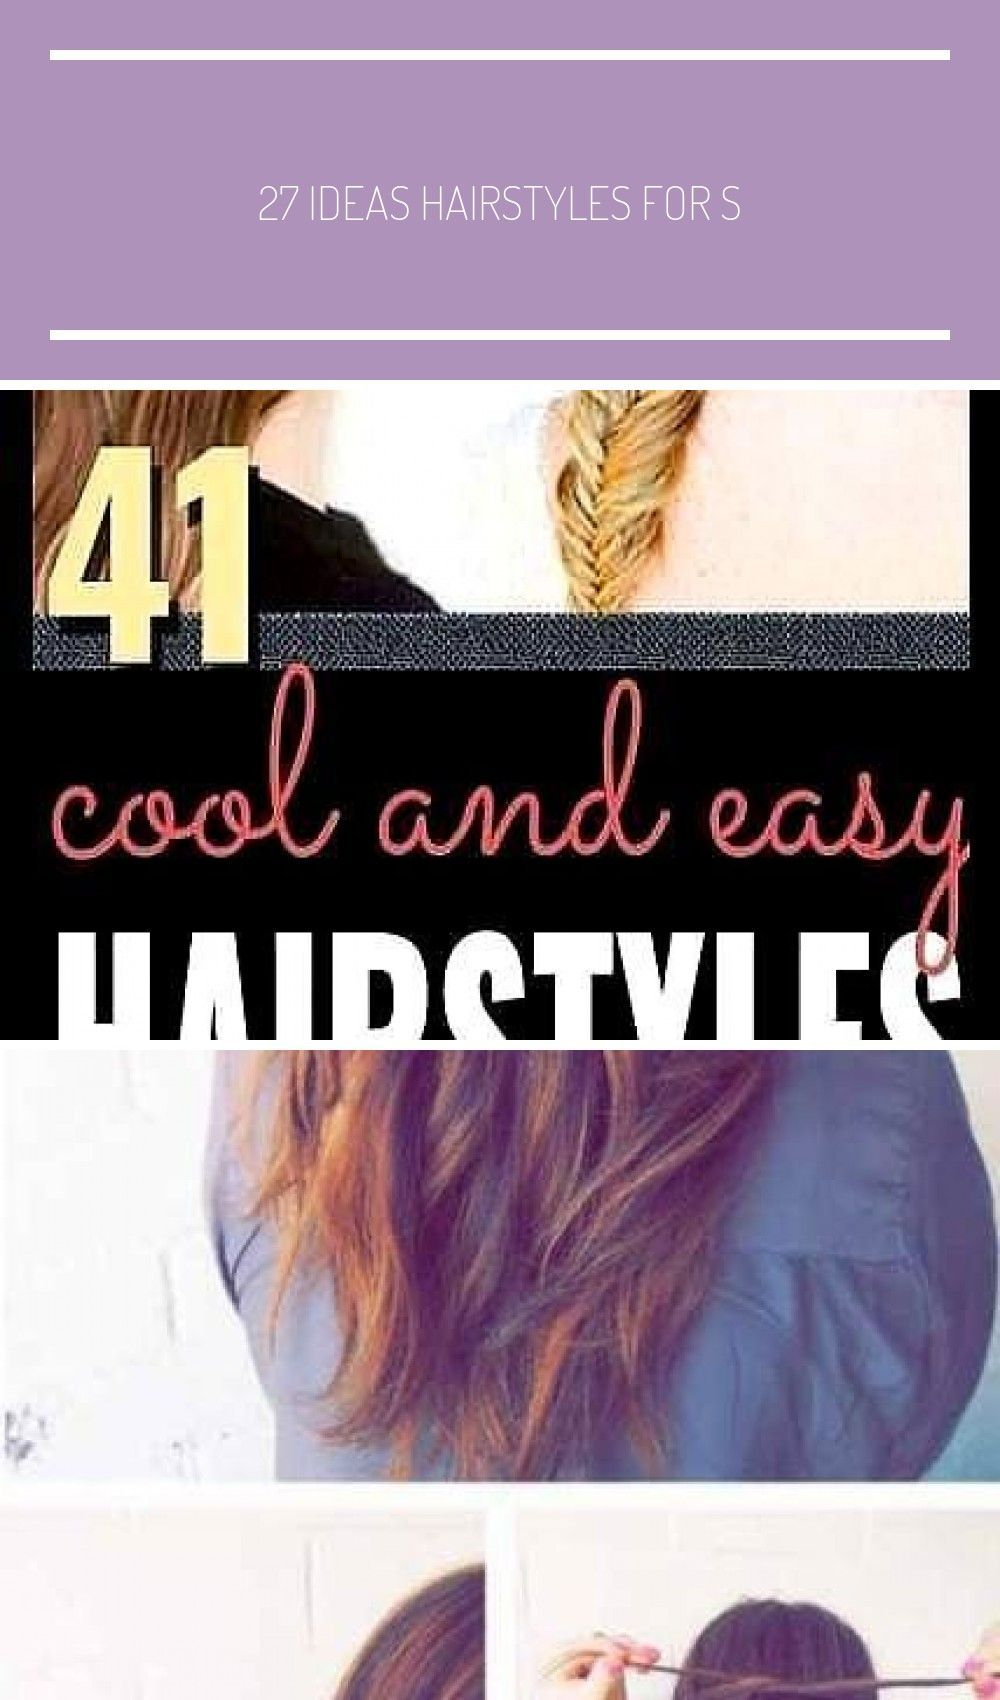 27 Ideas Hairstyles For School Medium Hair Easy Top Knot Easy Hair Hairstyles Ideas Kn 27 Ideas Hairstyles For School Medium Hair Easy Top Knot Easy H27 Ideas Hairstyles For School Medium Hair Easy Top Knot Easy Hair Hairstyles Ideas Kn 27 Ideas Hairstyles For School Medium Hair Easy Top Knot Easy HMessy Bun Save Images Messy Bun 27 Ideas Hairstyles For School Medium Hair Easy Top Knot Easy Hair Hairstyles Ideas Kn 27 Ideas Hairstyles #hairstyles #ideas #medium #messybunformediumhaireasy #school #topknotbunhowto